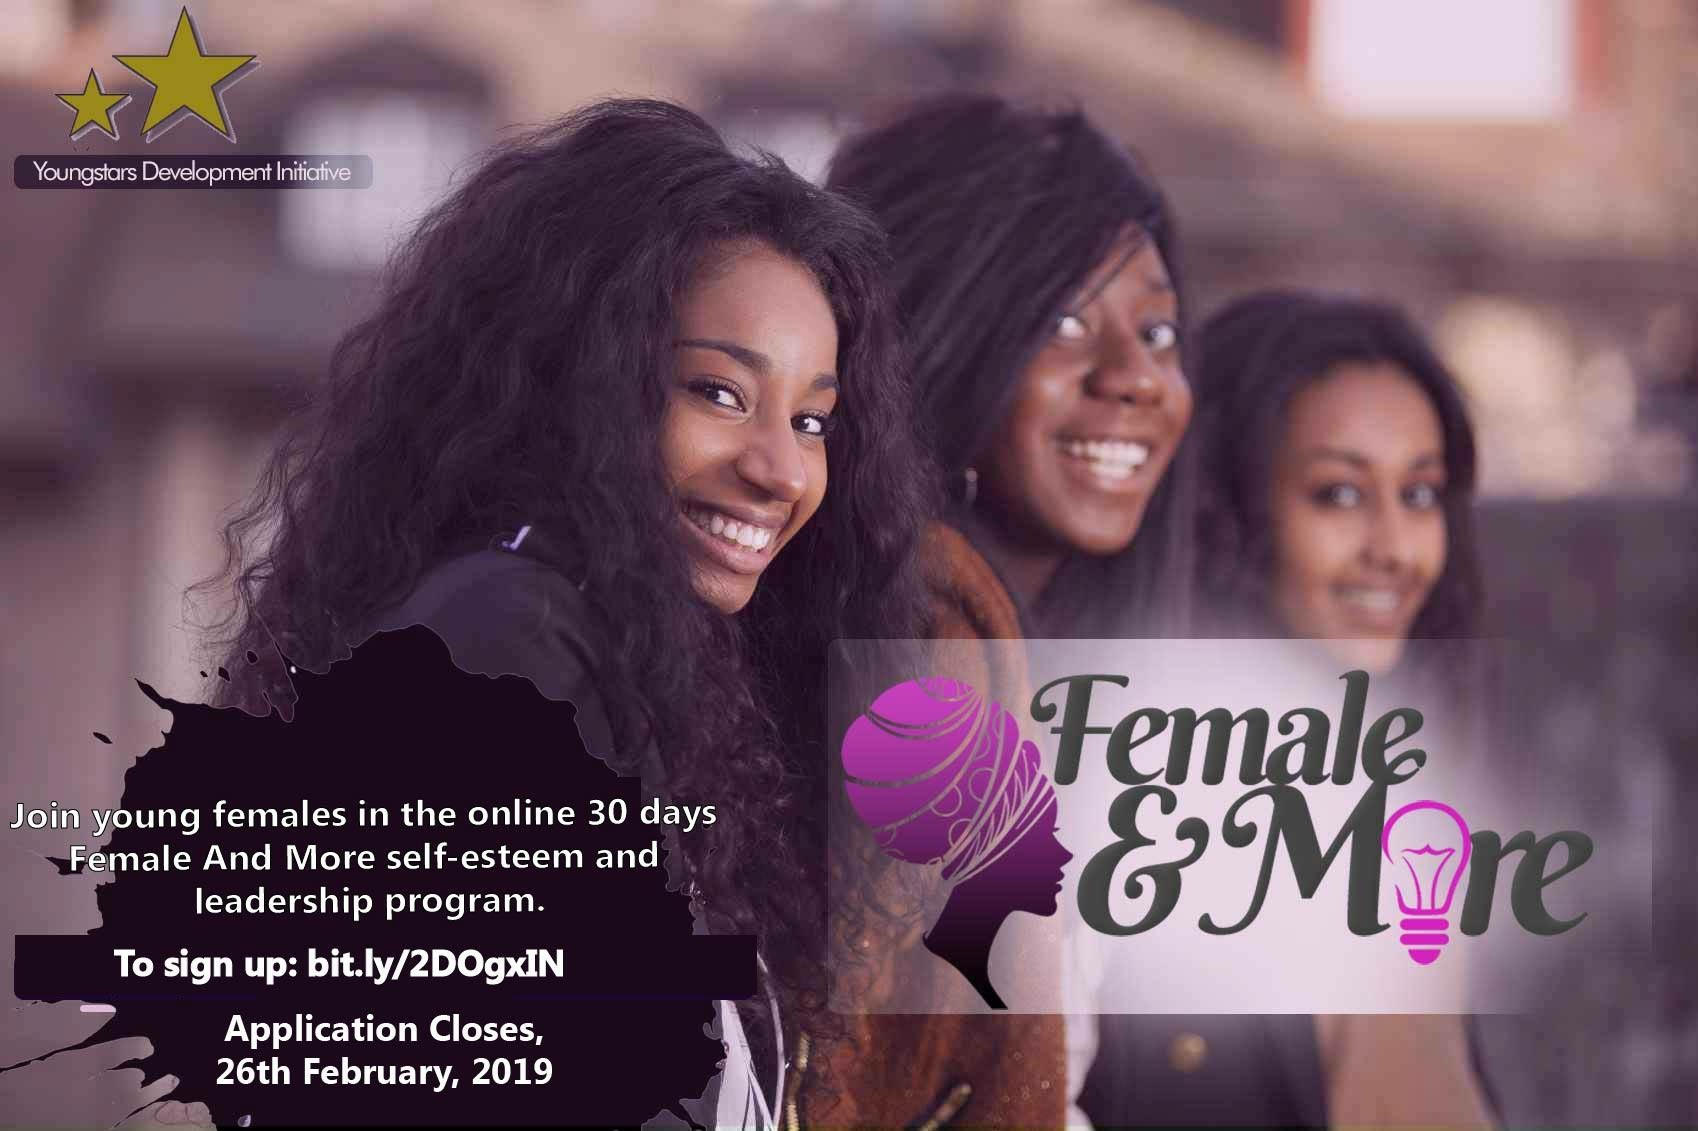 Female And More (FAM) Self-confidence and Management Program 2019 International Women's Day Edition